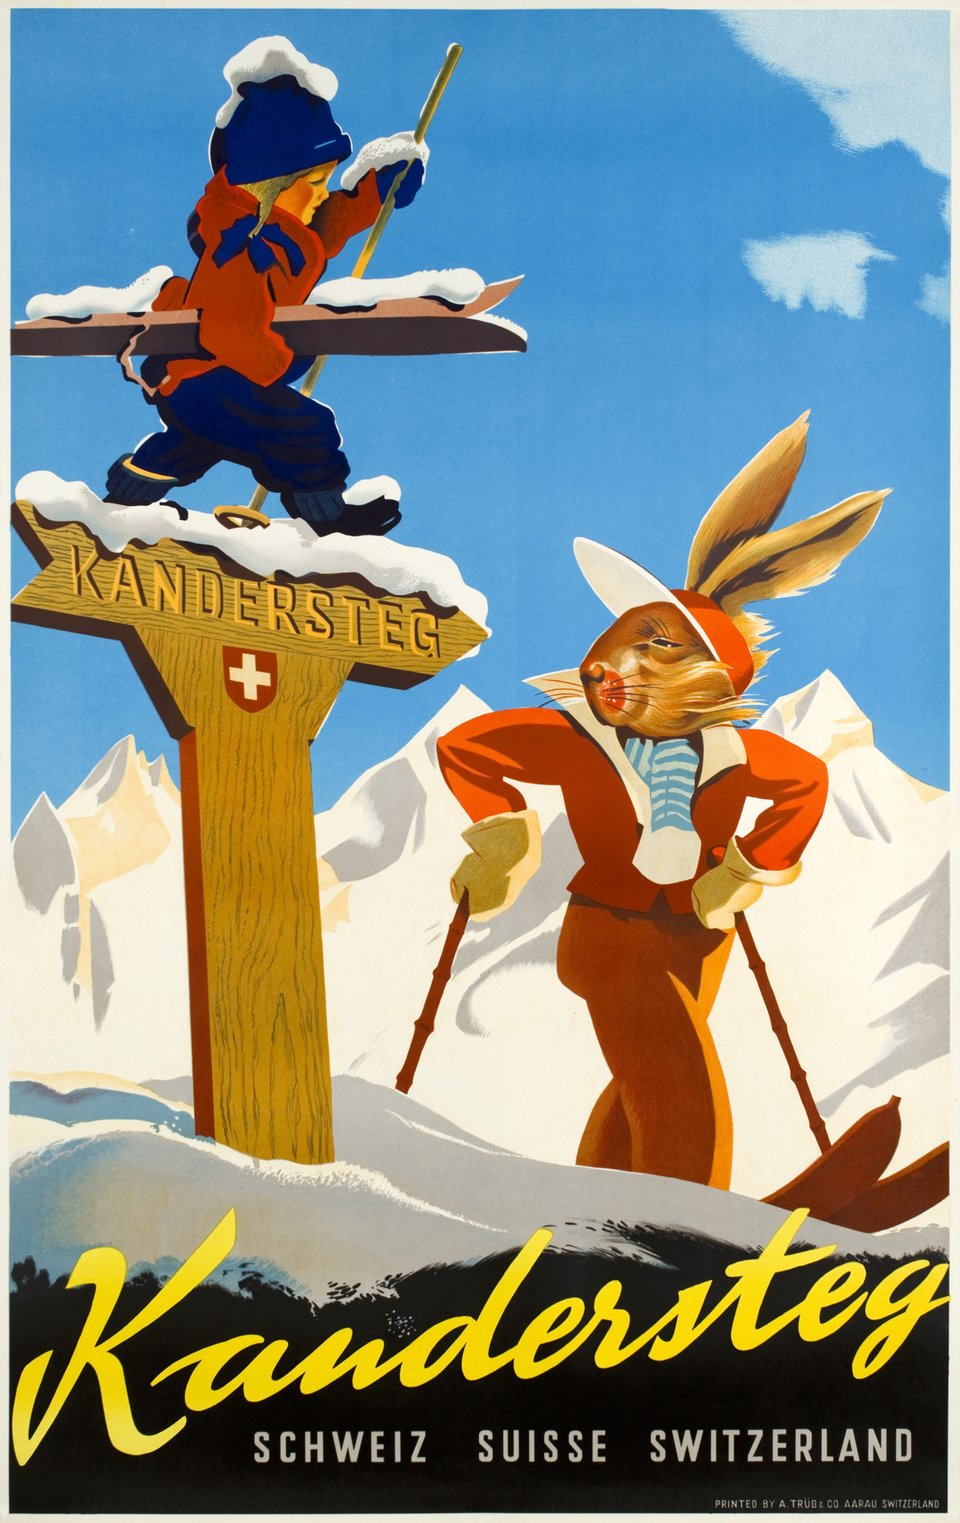 Kandersteg, Schweiz - Switzerland - Suisse – Affiche ancienne – Willi TRAPP – 1935